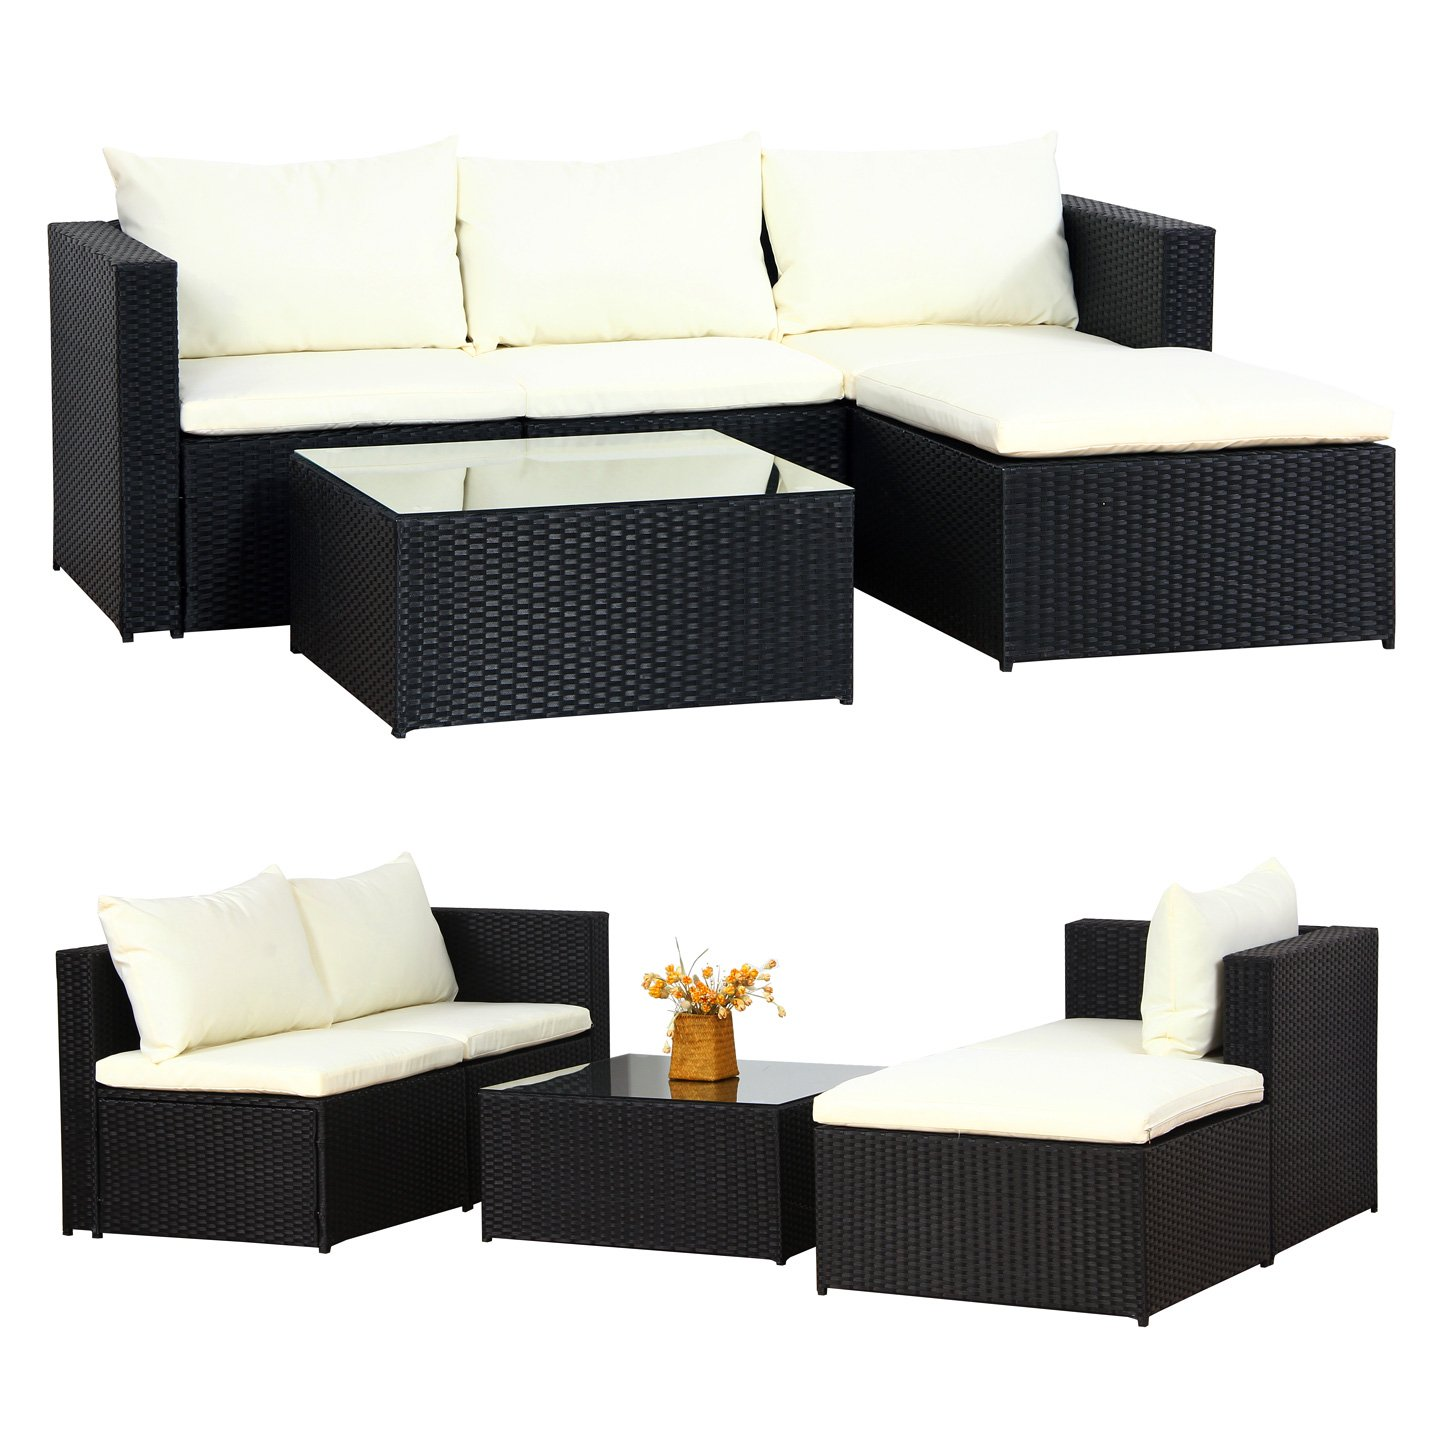 rattan gartenmobel schwarz eigenschaften0. Black Bedroom Furniture Sets. Home Design Ideas